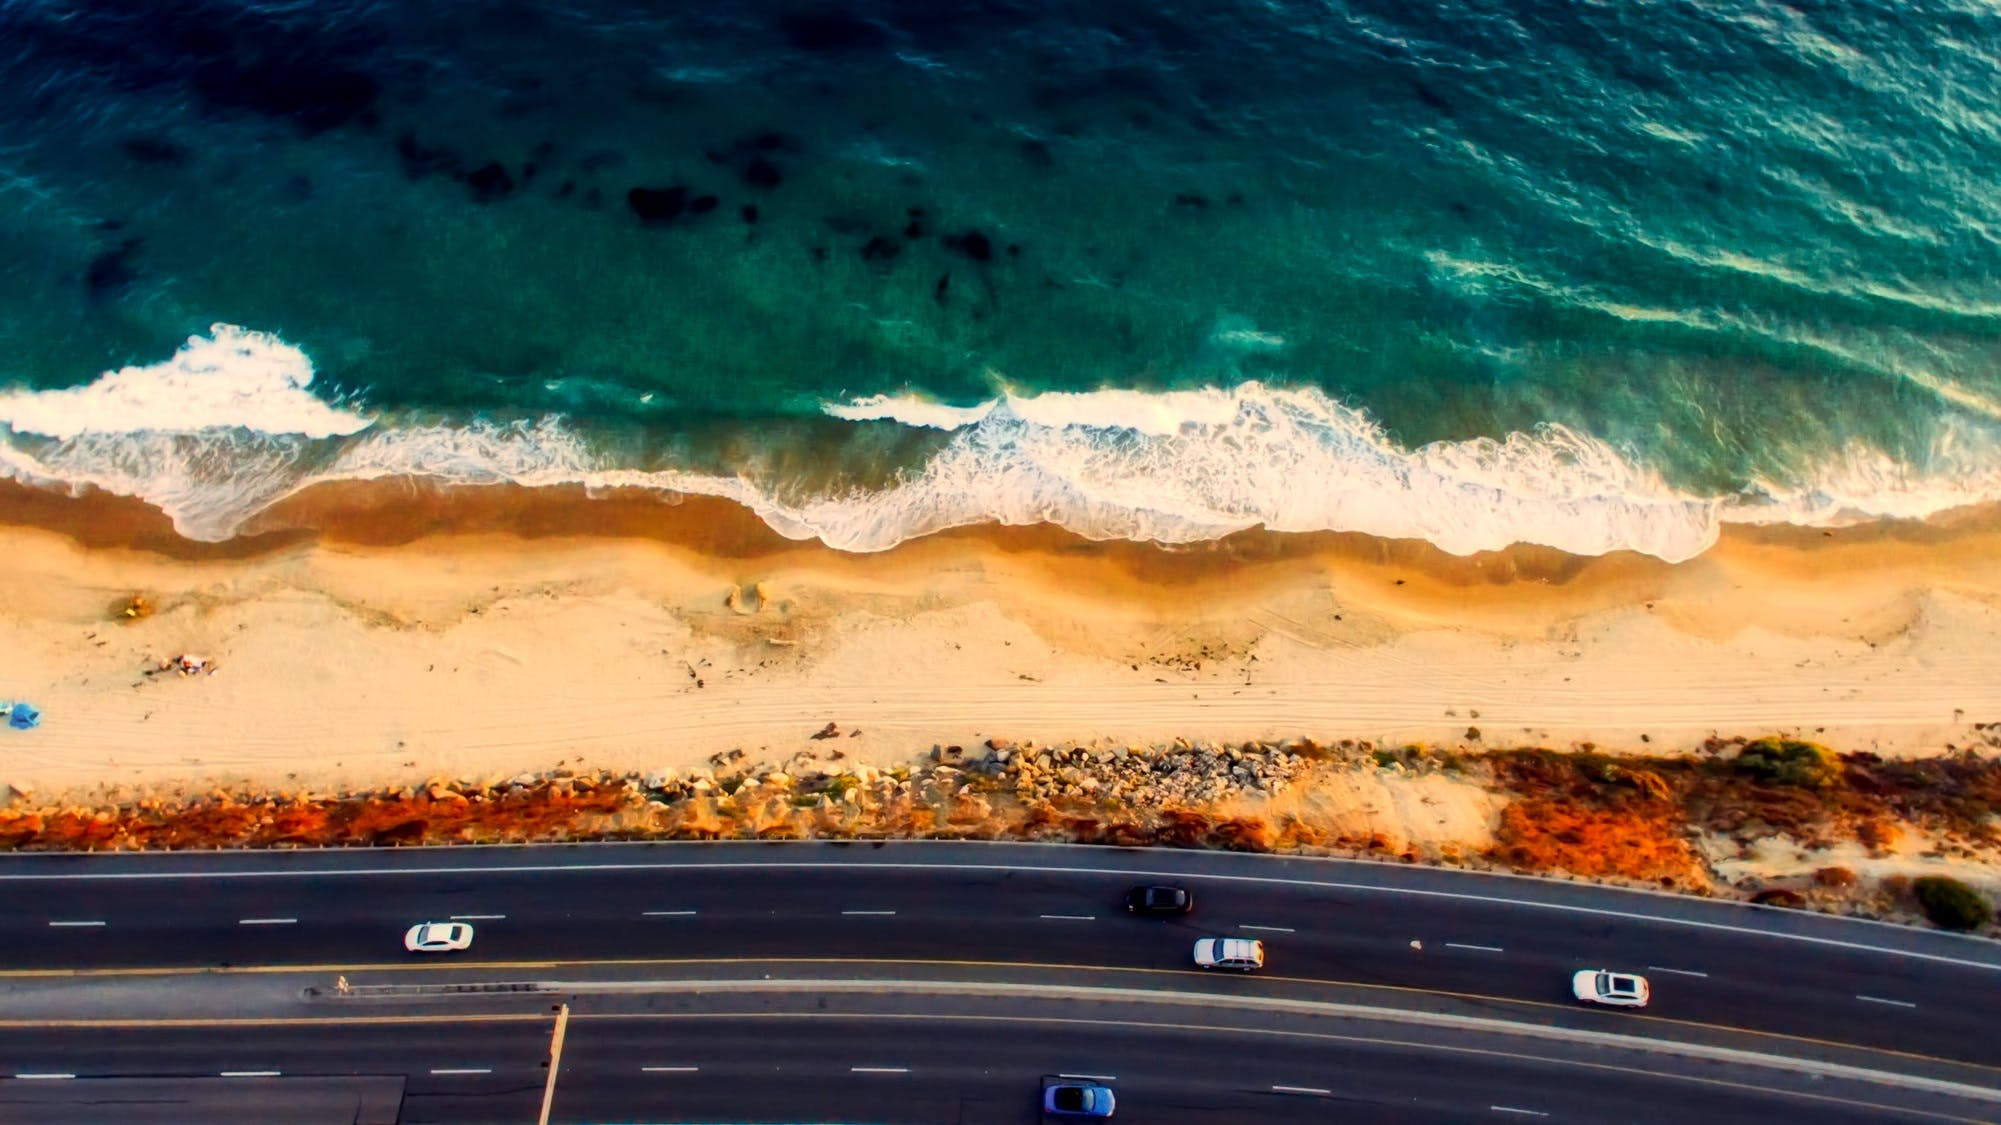 Free stock photo of sea, bird's eye view, road, beach